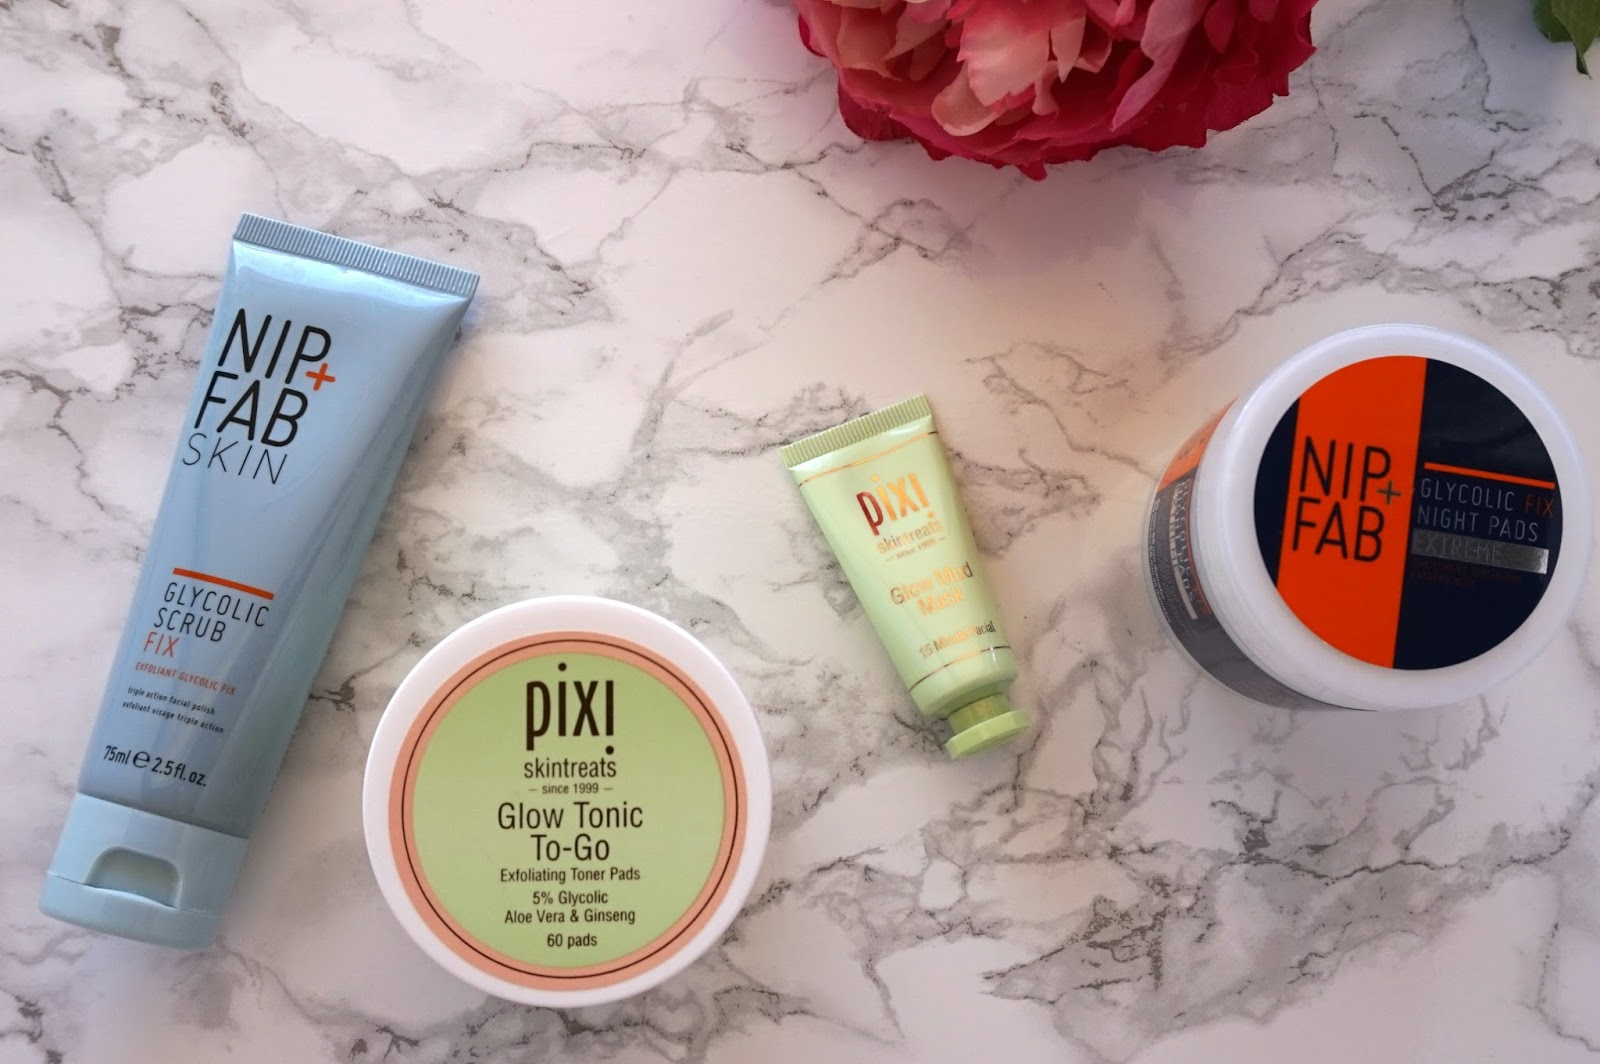 Acne Prone & Anti-Aging Skincare Products   beautywithlily.com